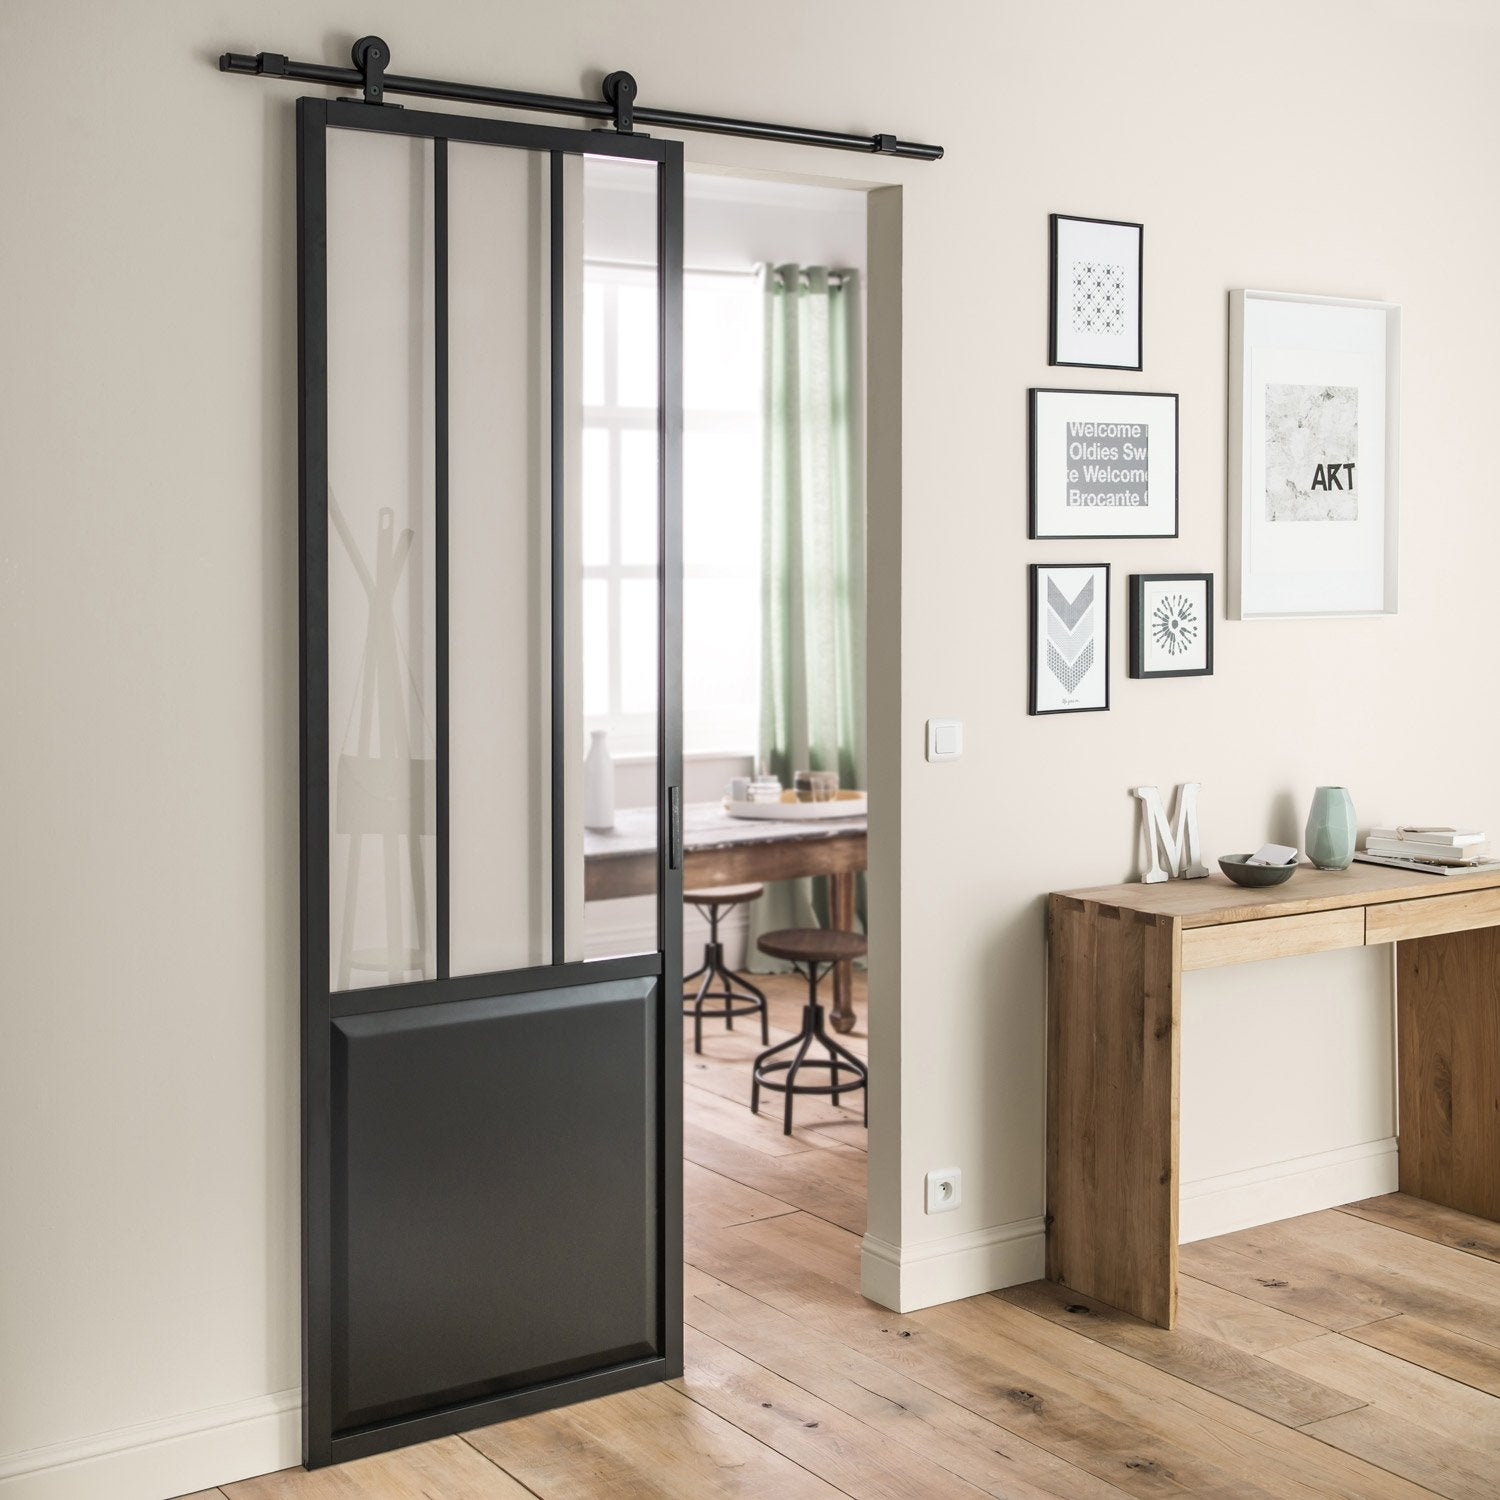 Ensemble porte coulissante atelier mdf rev tu avec le rail for Double porte vitree interieure